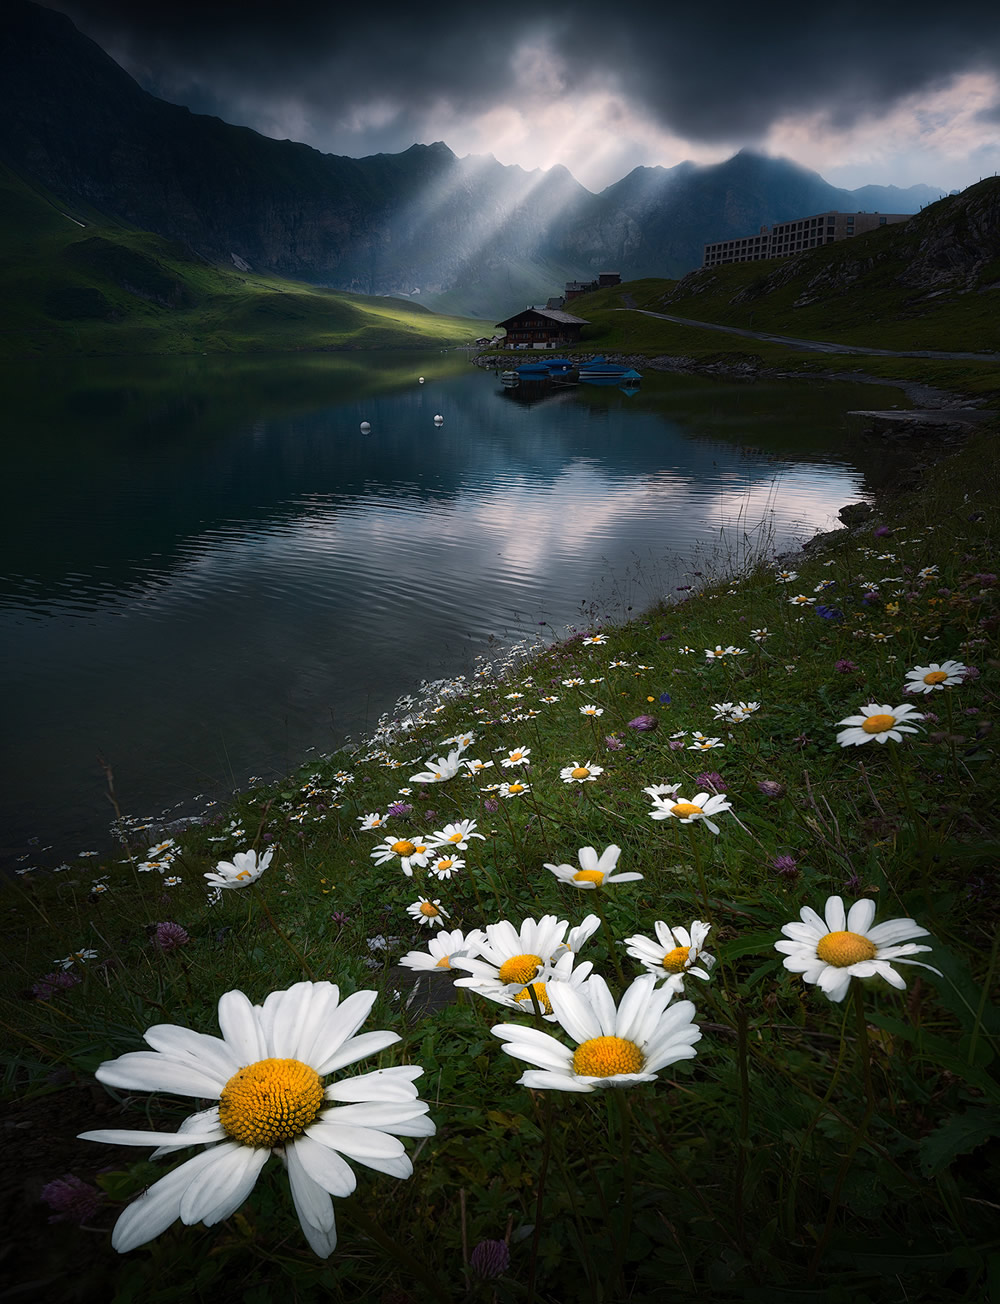 Beautiful Flowers Of The Alps In The Summer By Isabella Tabacchi